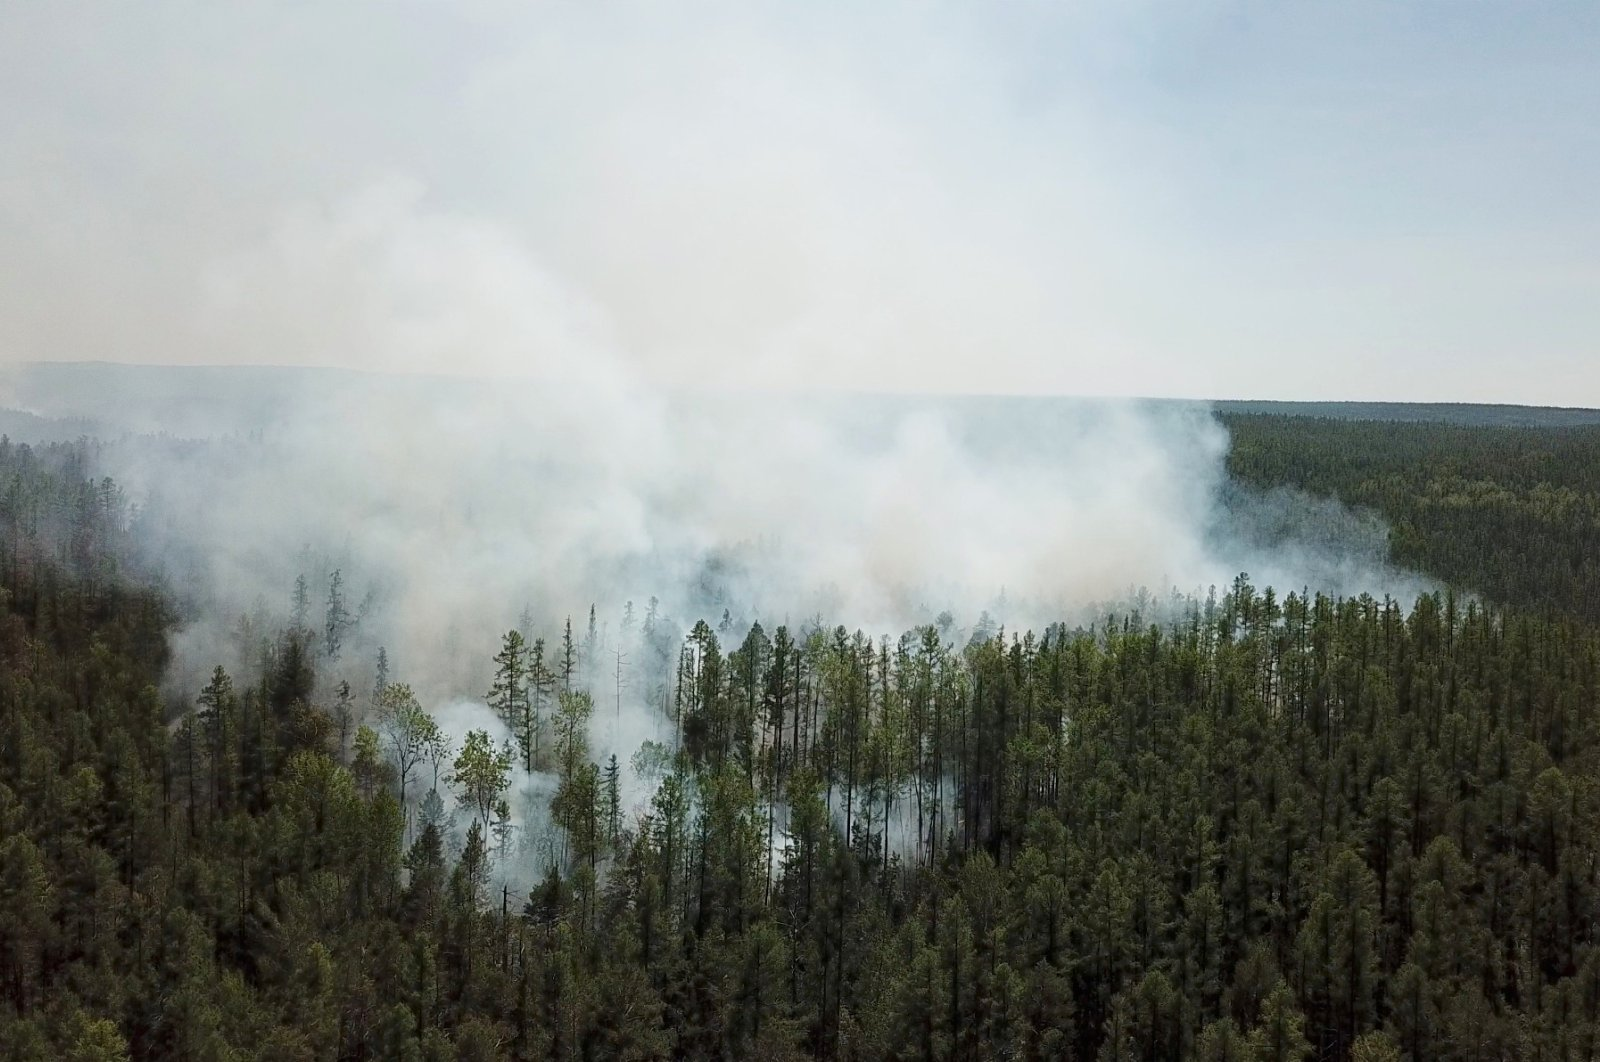 An aerial view shows smoke rising from a forest fire burning in Krasnoyarsk region, Russia, July 10, 2020. (Reuters Photo)